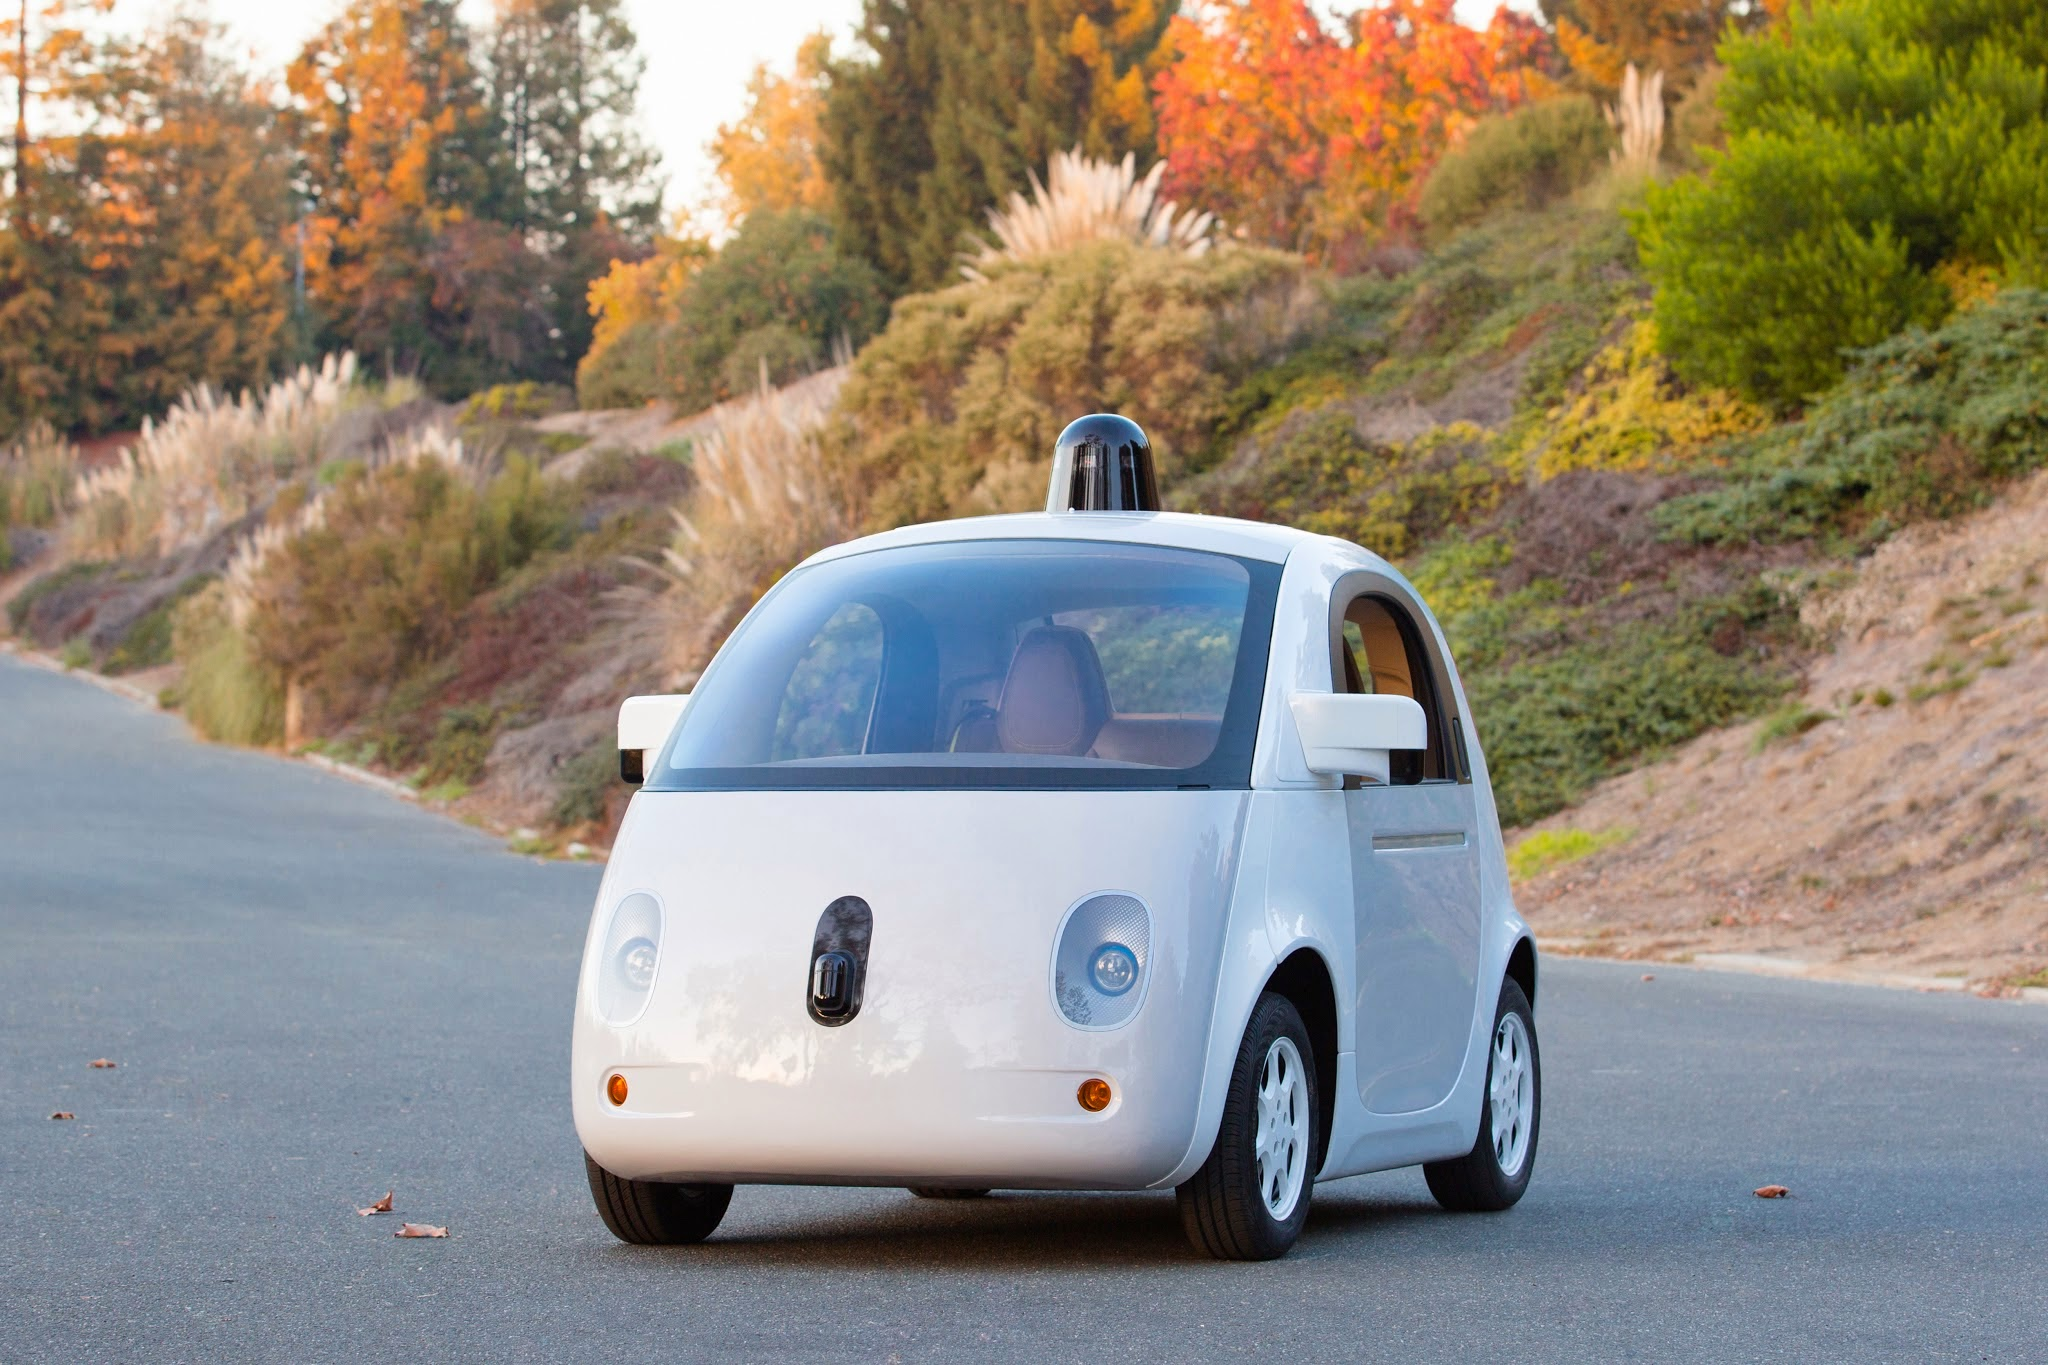 How Google Is Influencing Non-Tech Companies To Get Into The Self-Driving Car Race